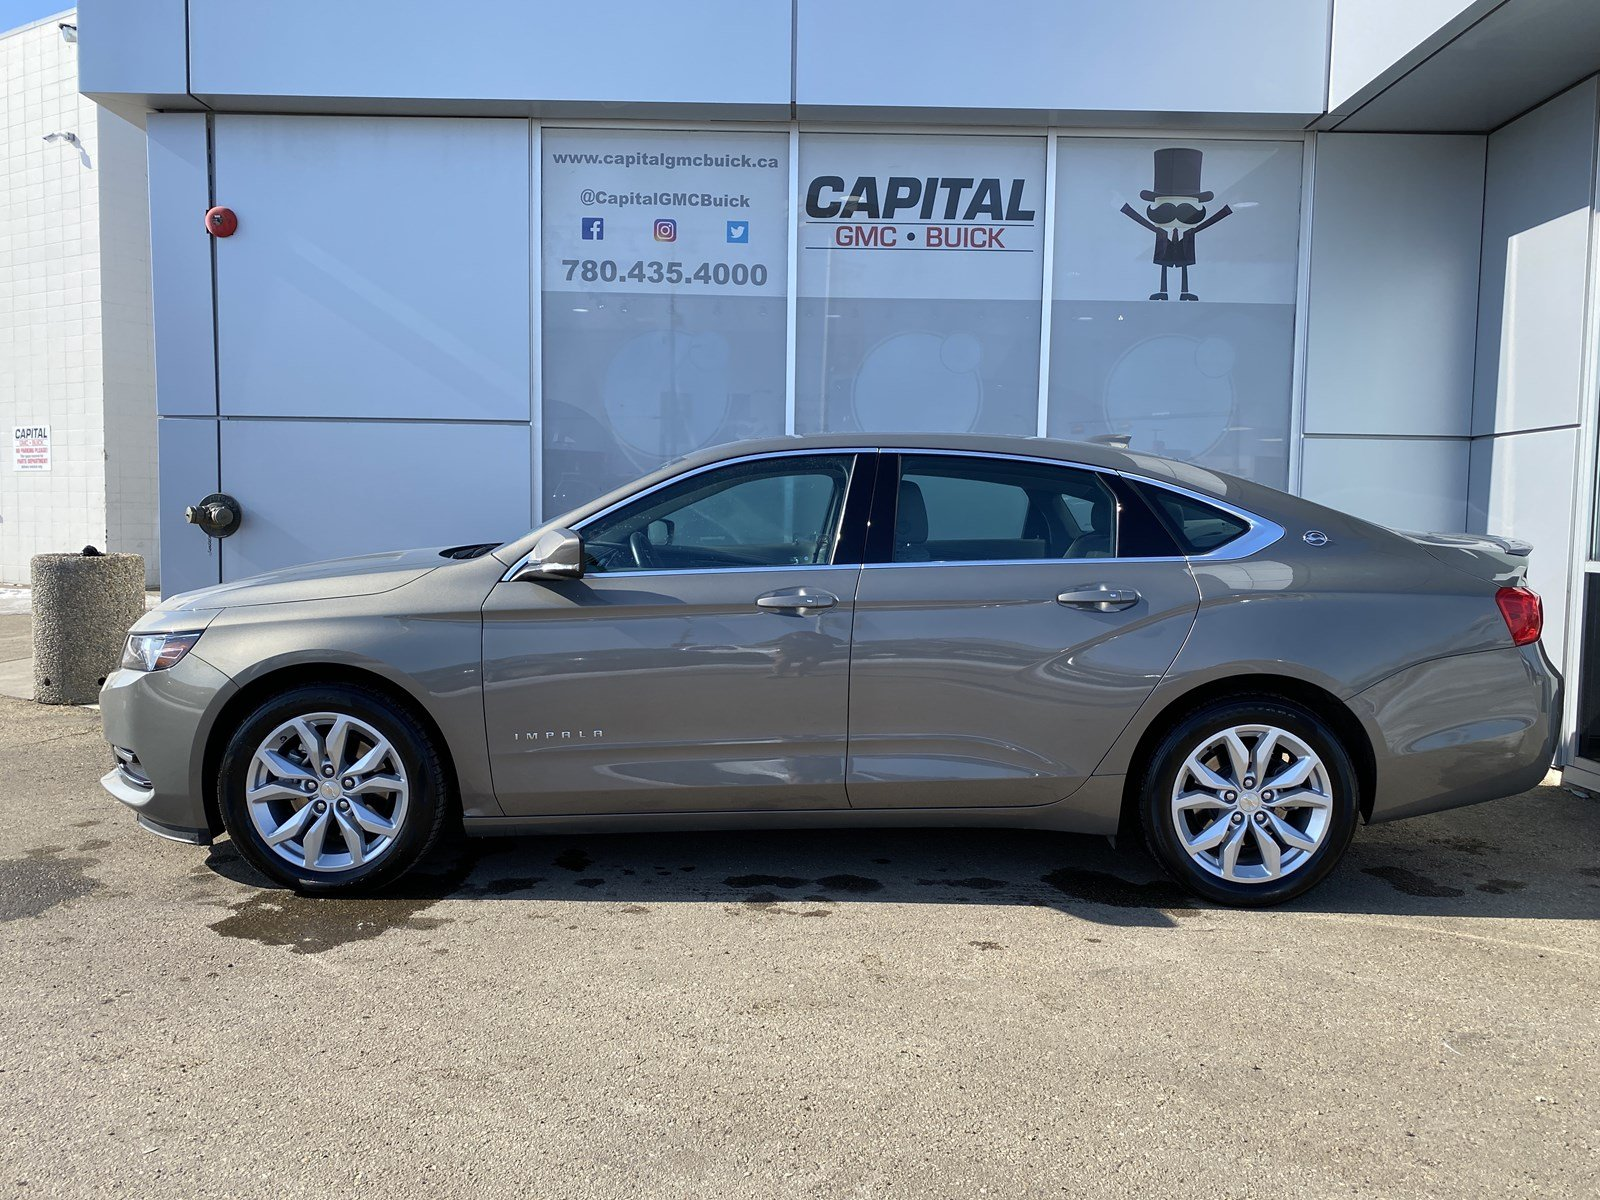 Certified Pre-Owned 2019 Chevrolet Impala LT SUNROOF HEATED SEATS & STEERING REMOTE START